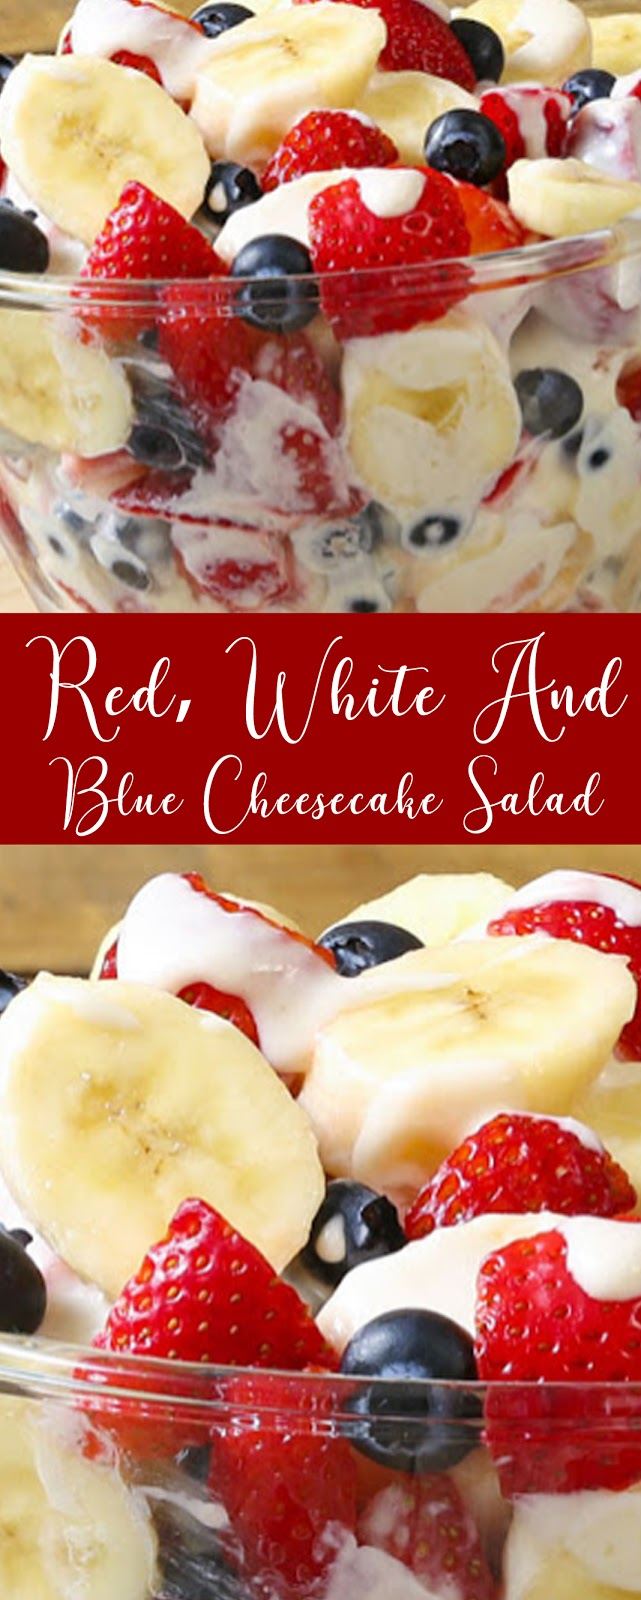 Recipe RED, WHITE AND BLUE CHEESECAKE SALAD #salad